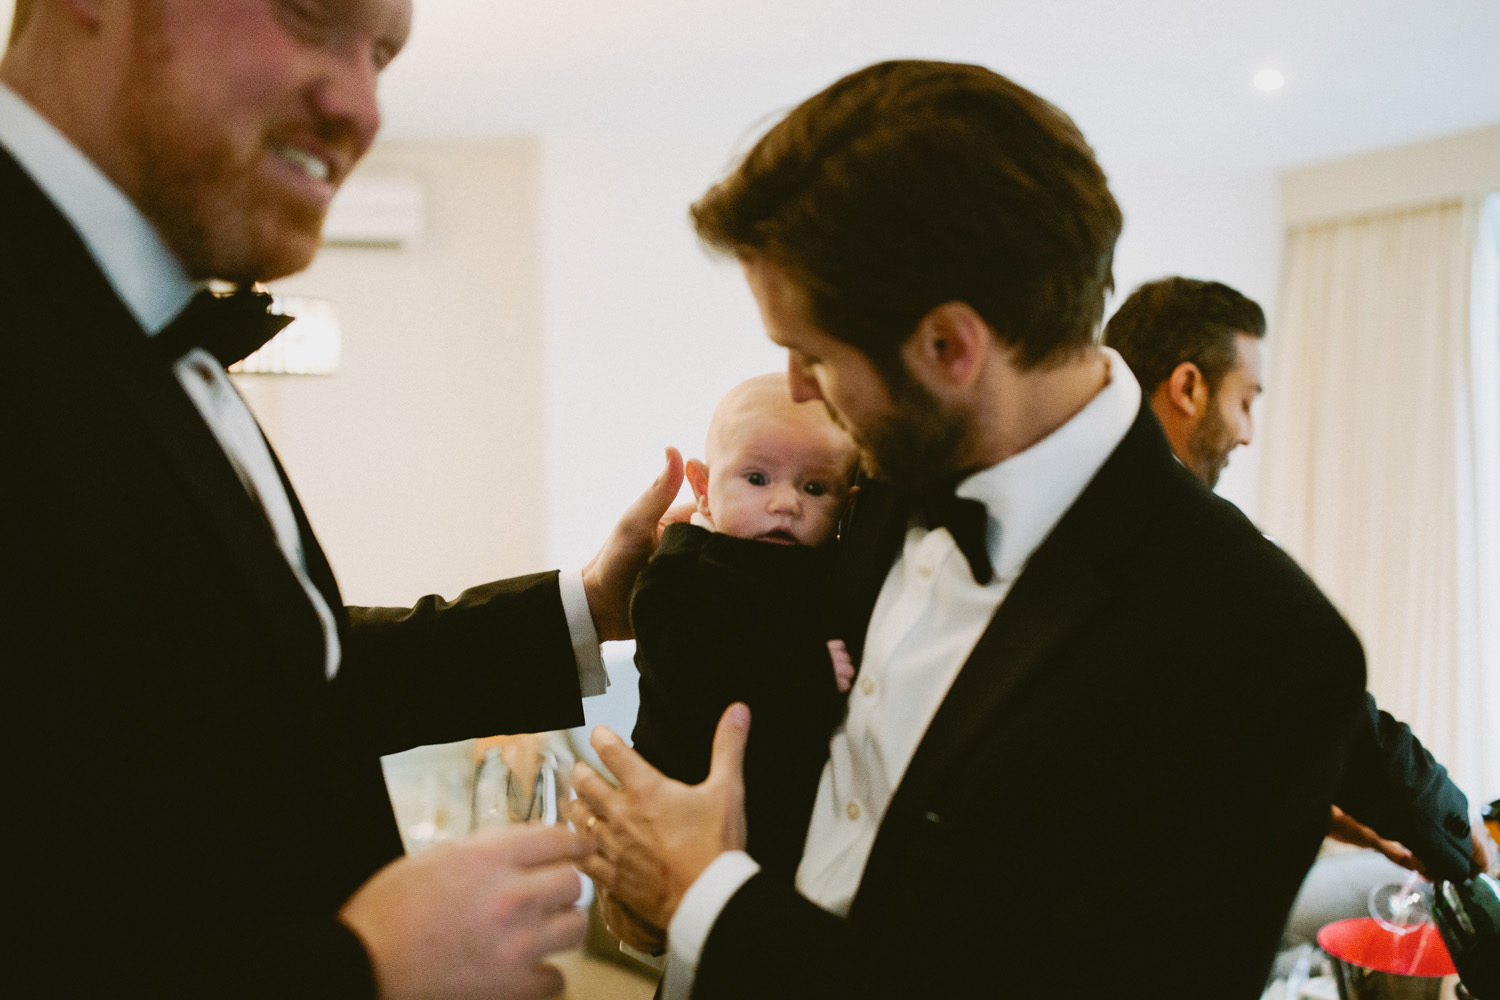 man in black tie holding baby